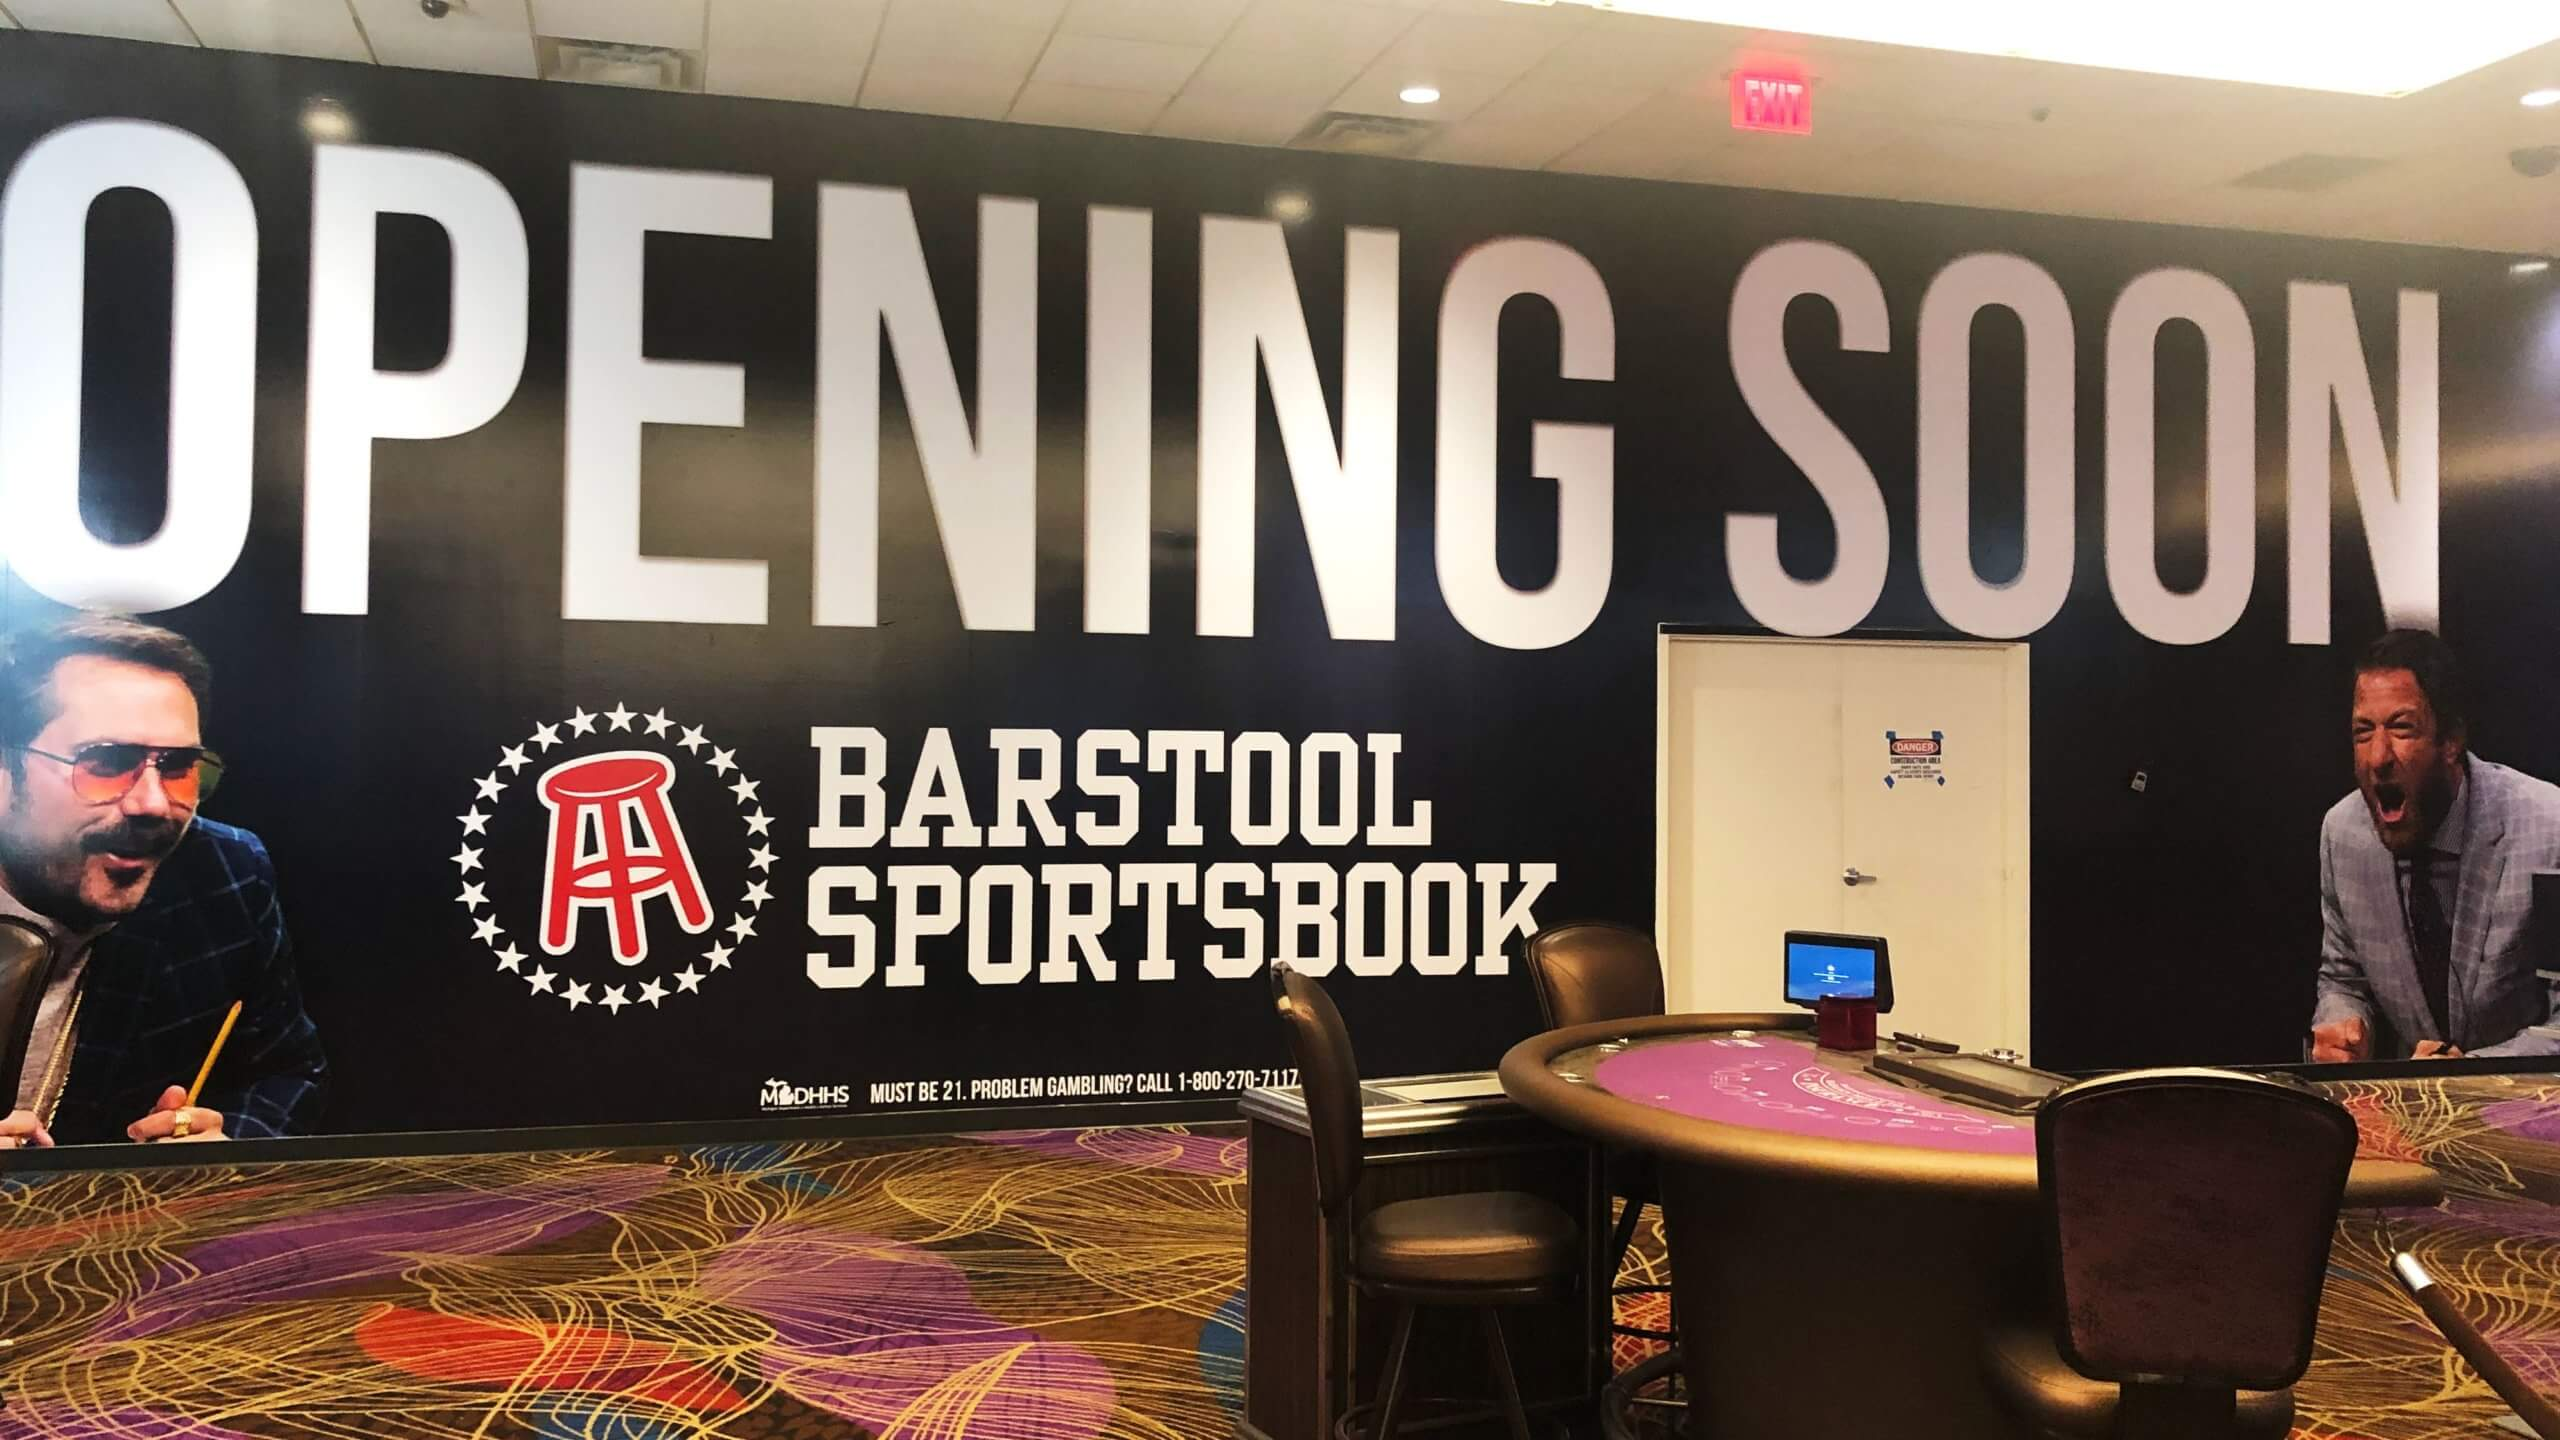 Barstool Sportsbook is Officially opening a retail sportsbook in Greektown Casino Michigan